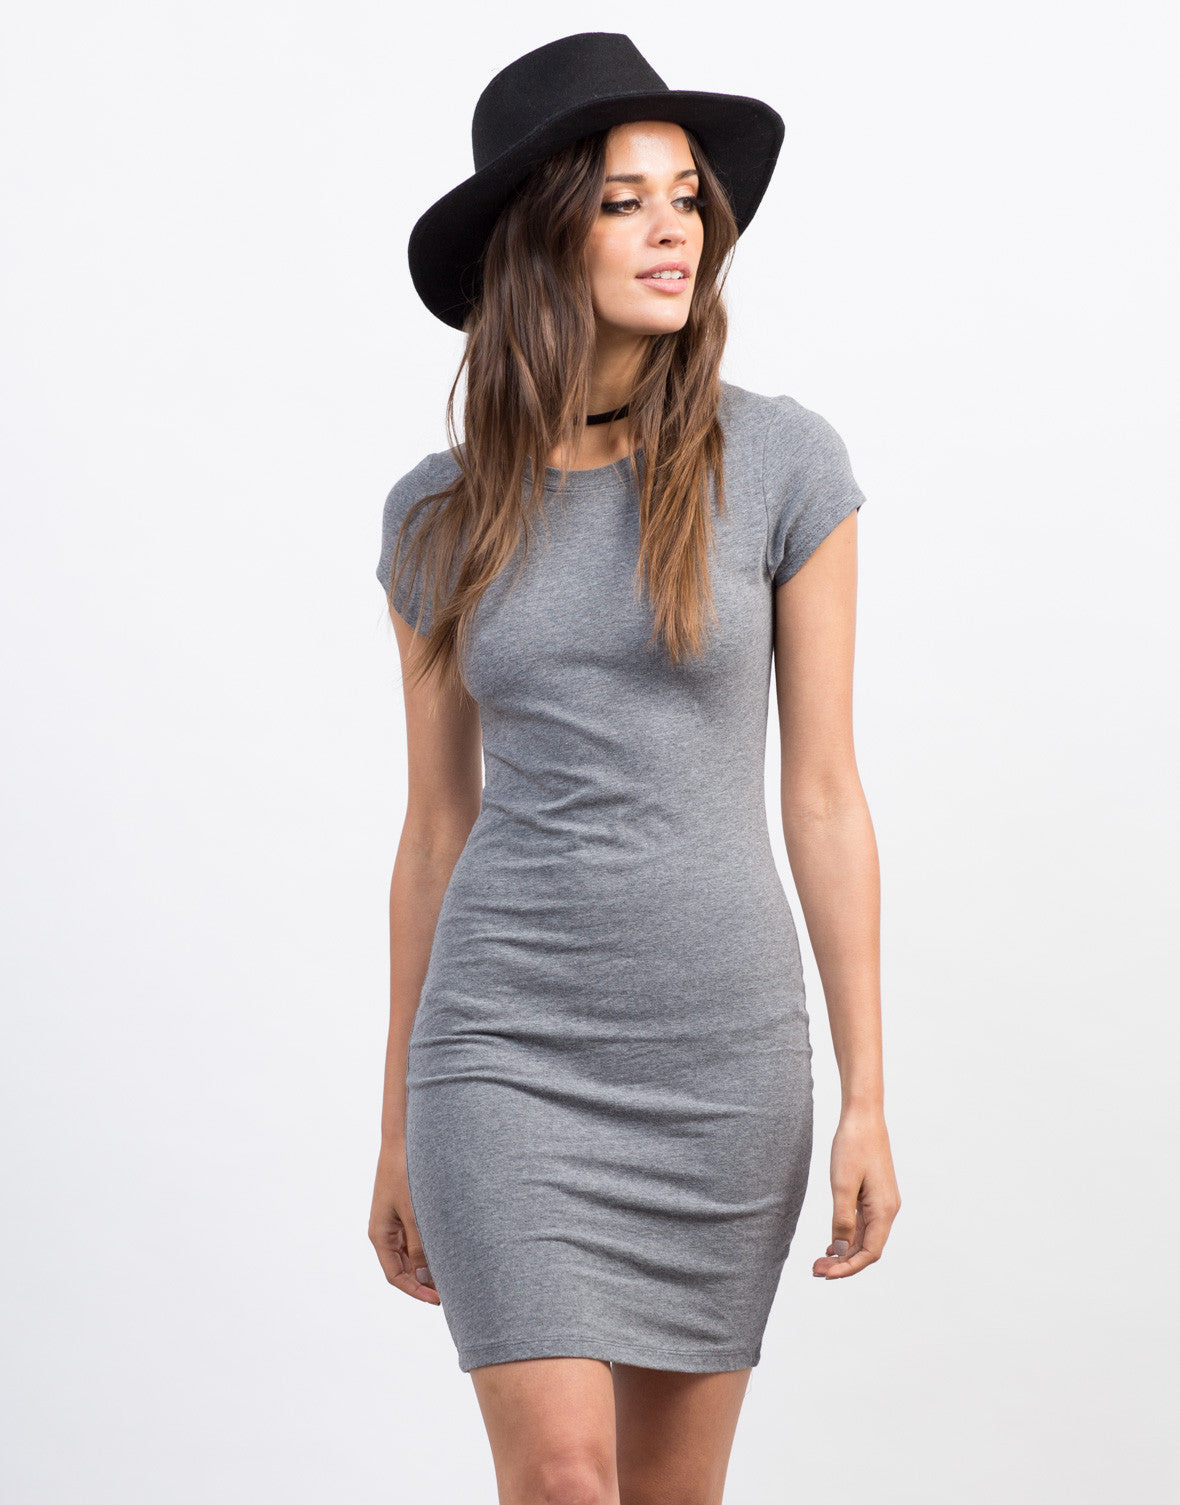 Shop for and buy t shirt dress online at Macy's. Find t shirt dress at Macy's.